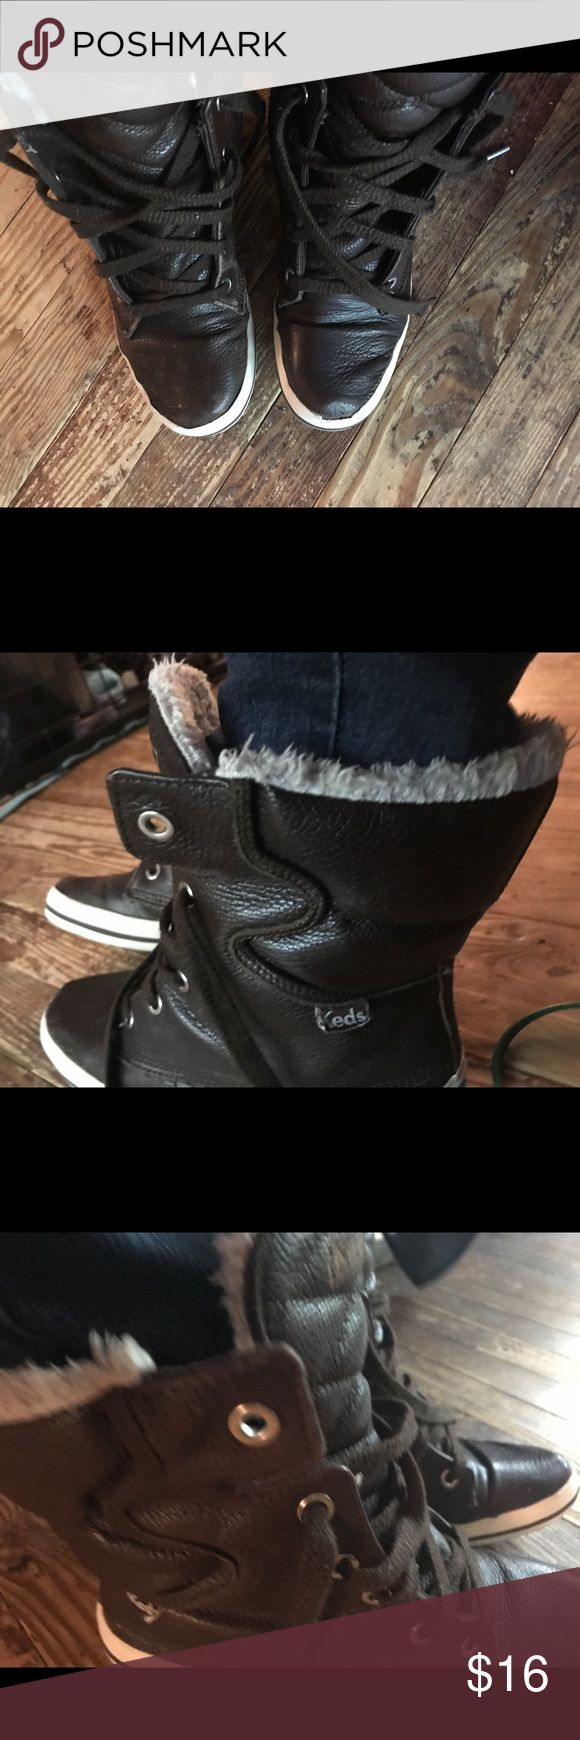 Winter ked leather boots Brown leather ked high top winter boots Keds Shoes Winter & Rain Boots